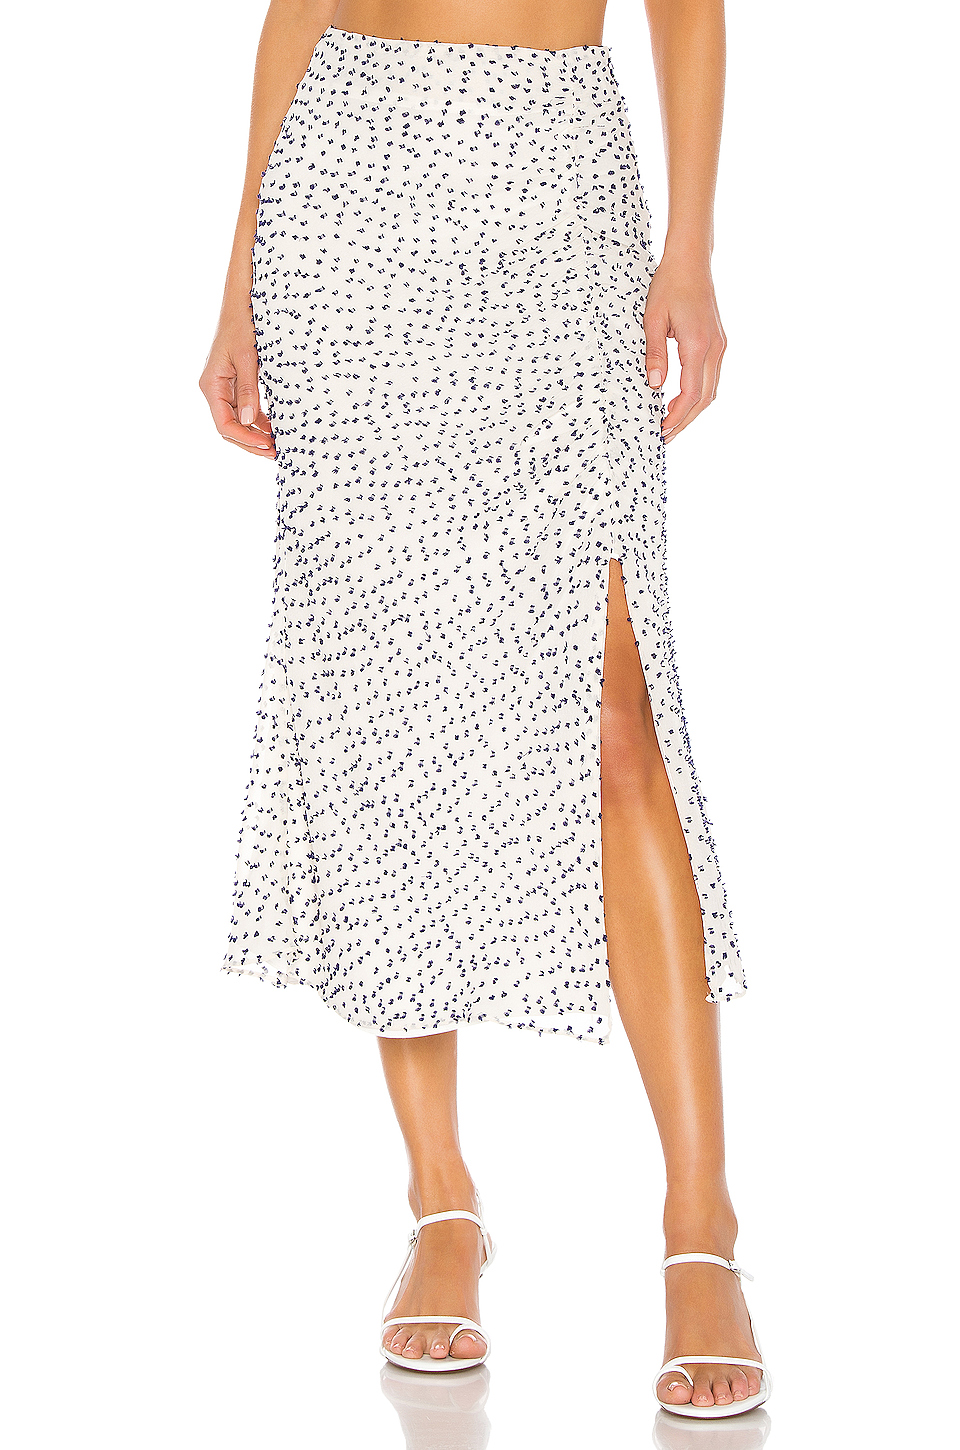 House of Harlow 1960 X REVOLVE Margot Midi Skirt